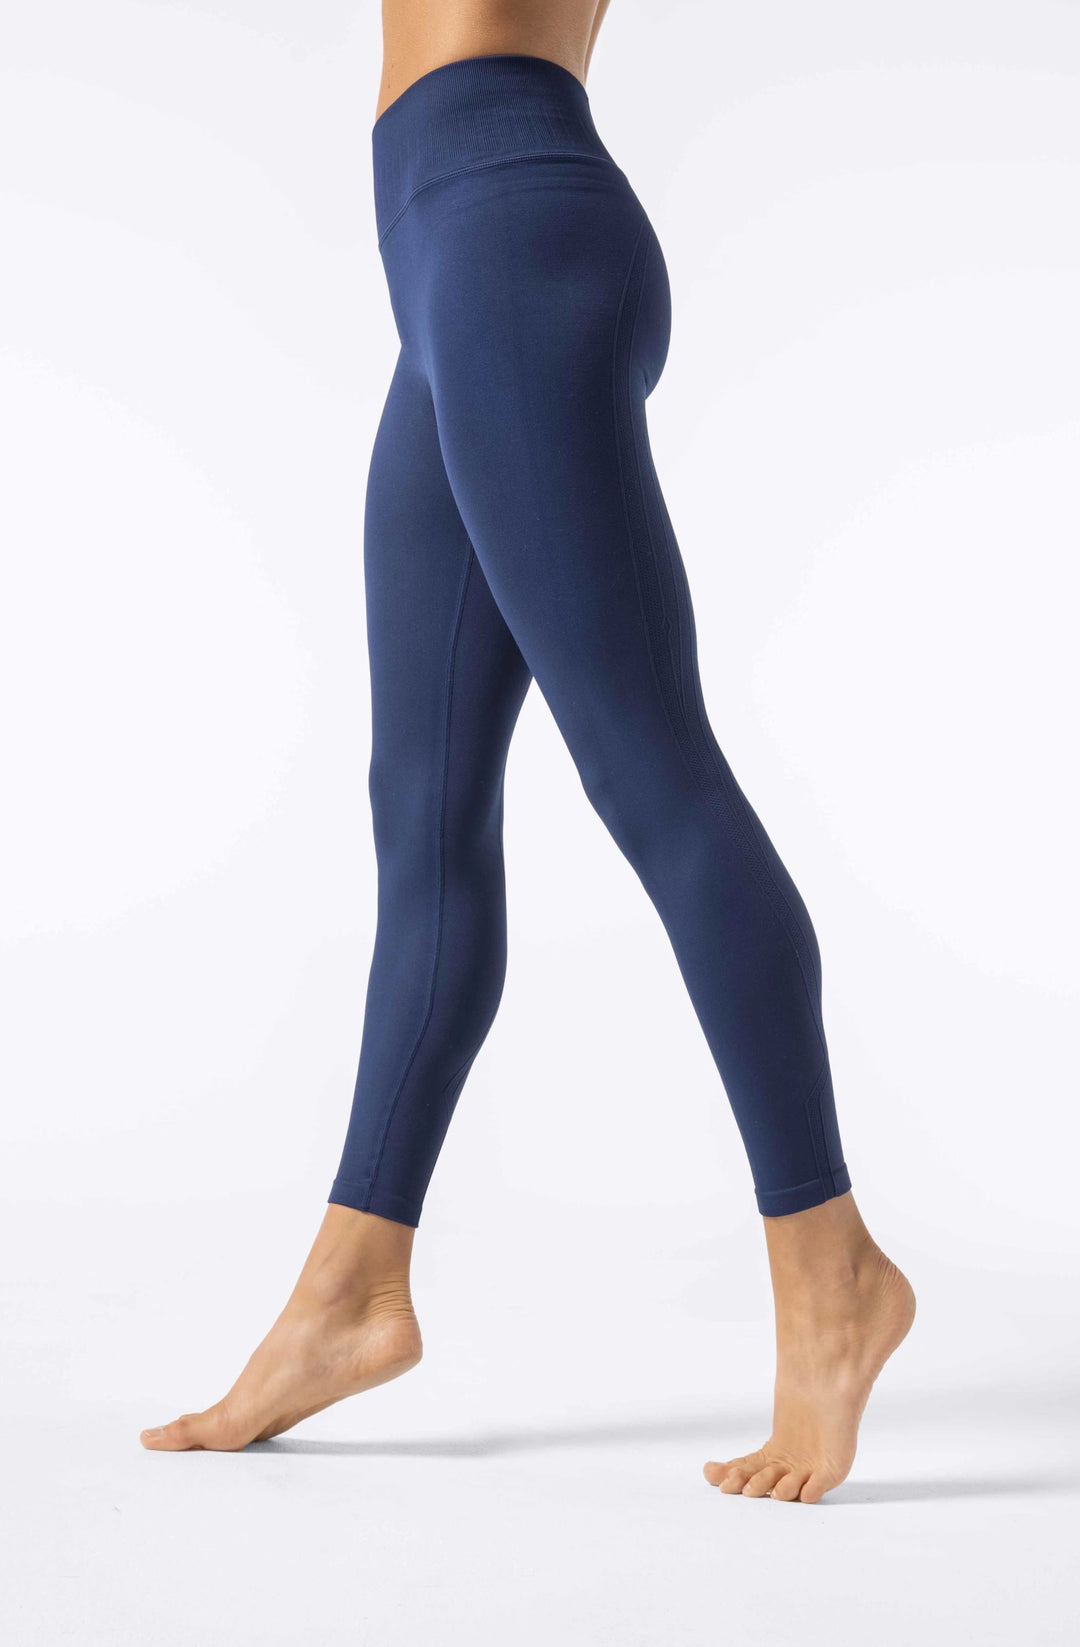 WATER Restore Seamless High-Waisted 7/8 Leggings -- Deep Blue